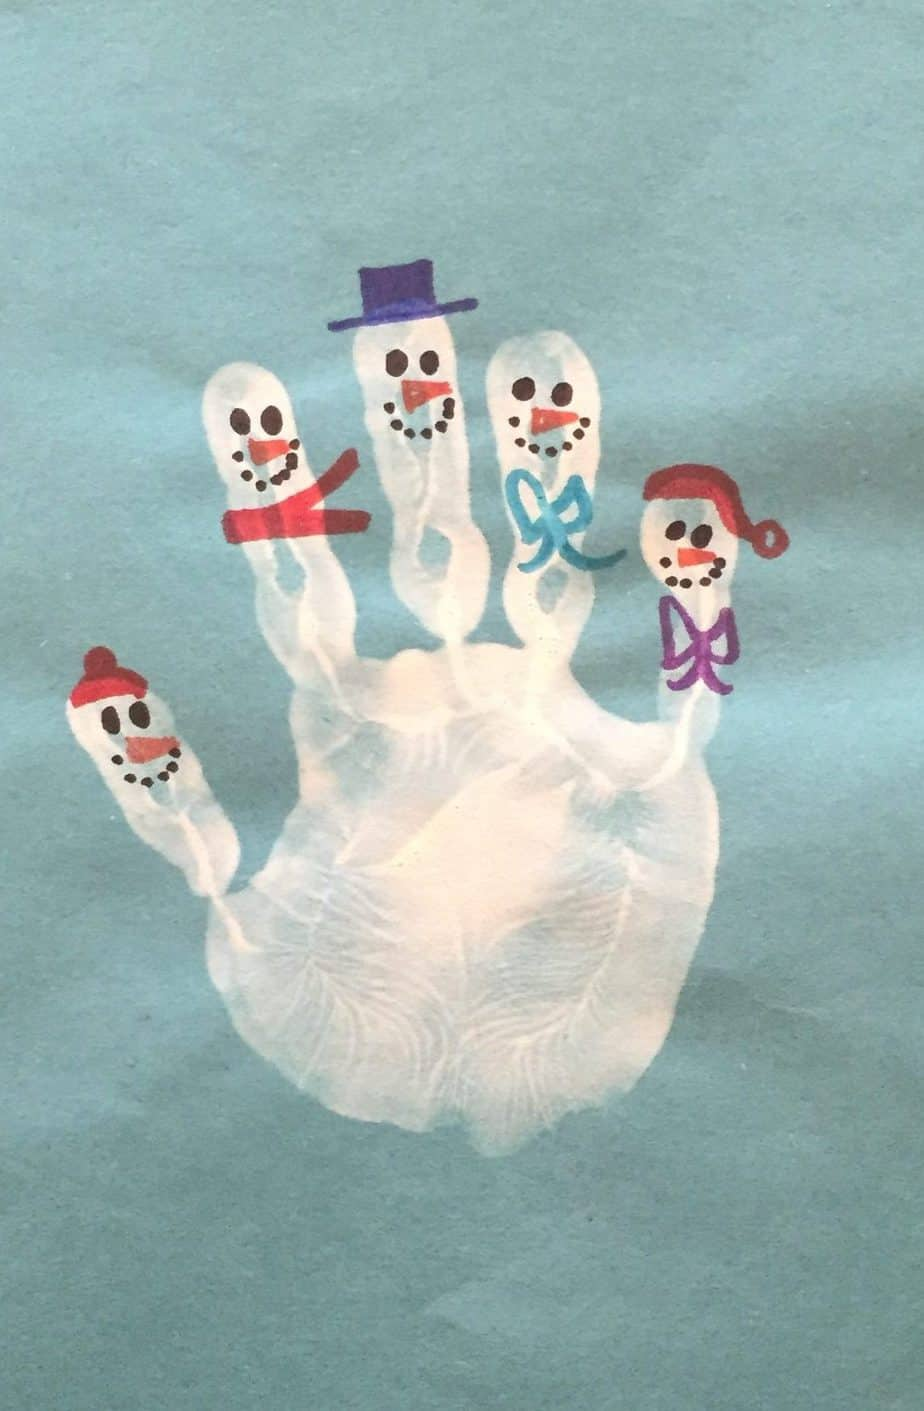 White hand-print with fingers made into tiny snowman is a simple winter craft for kids.